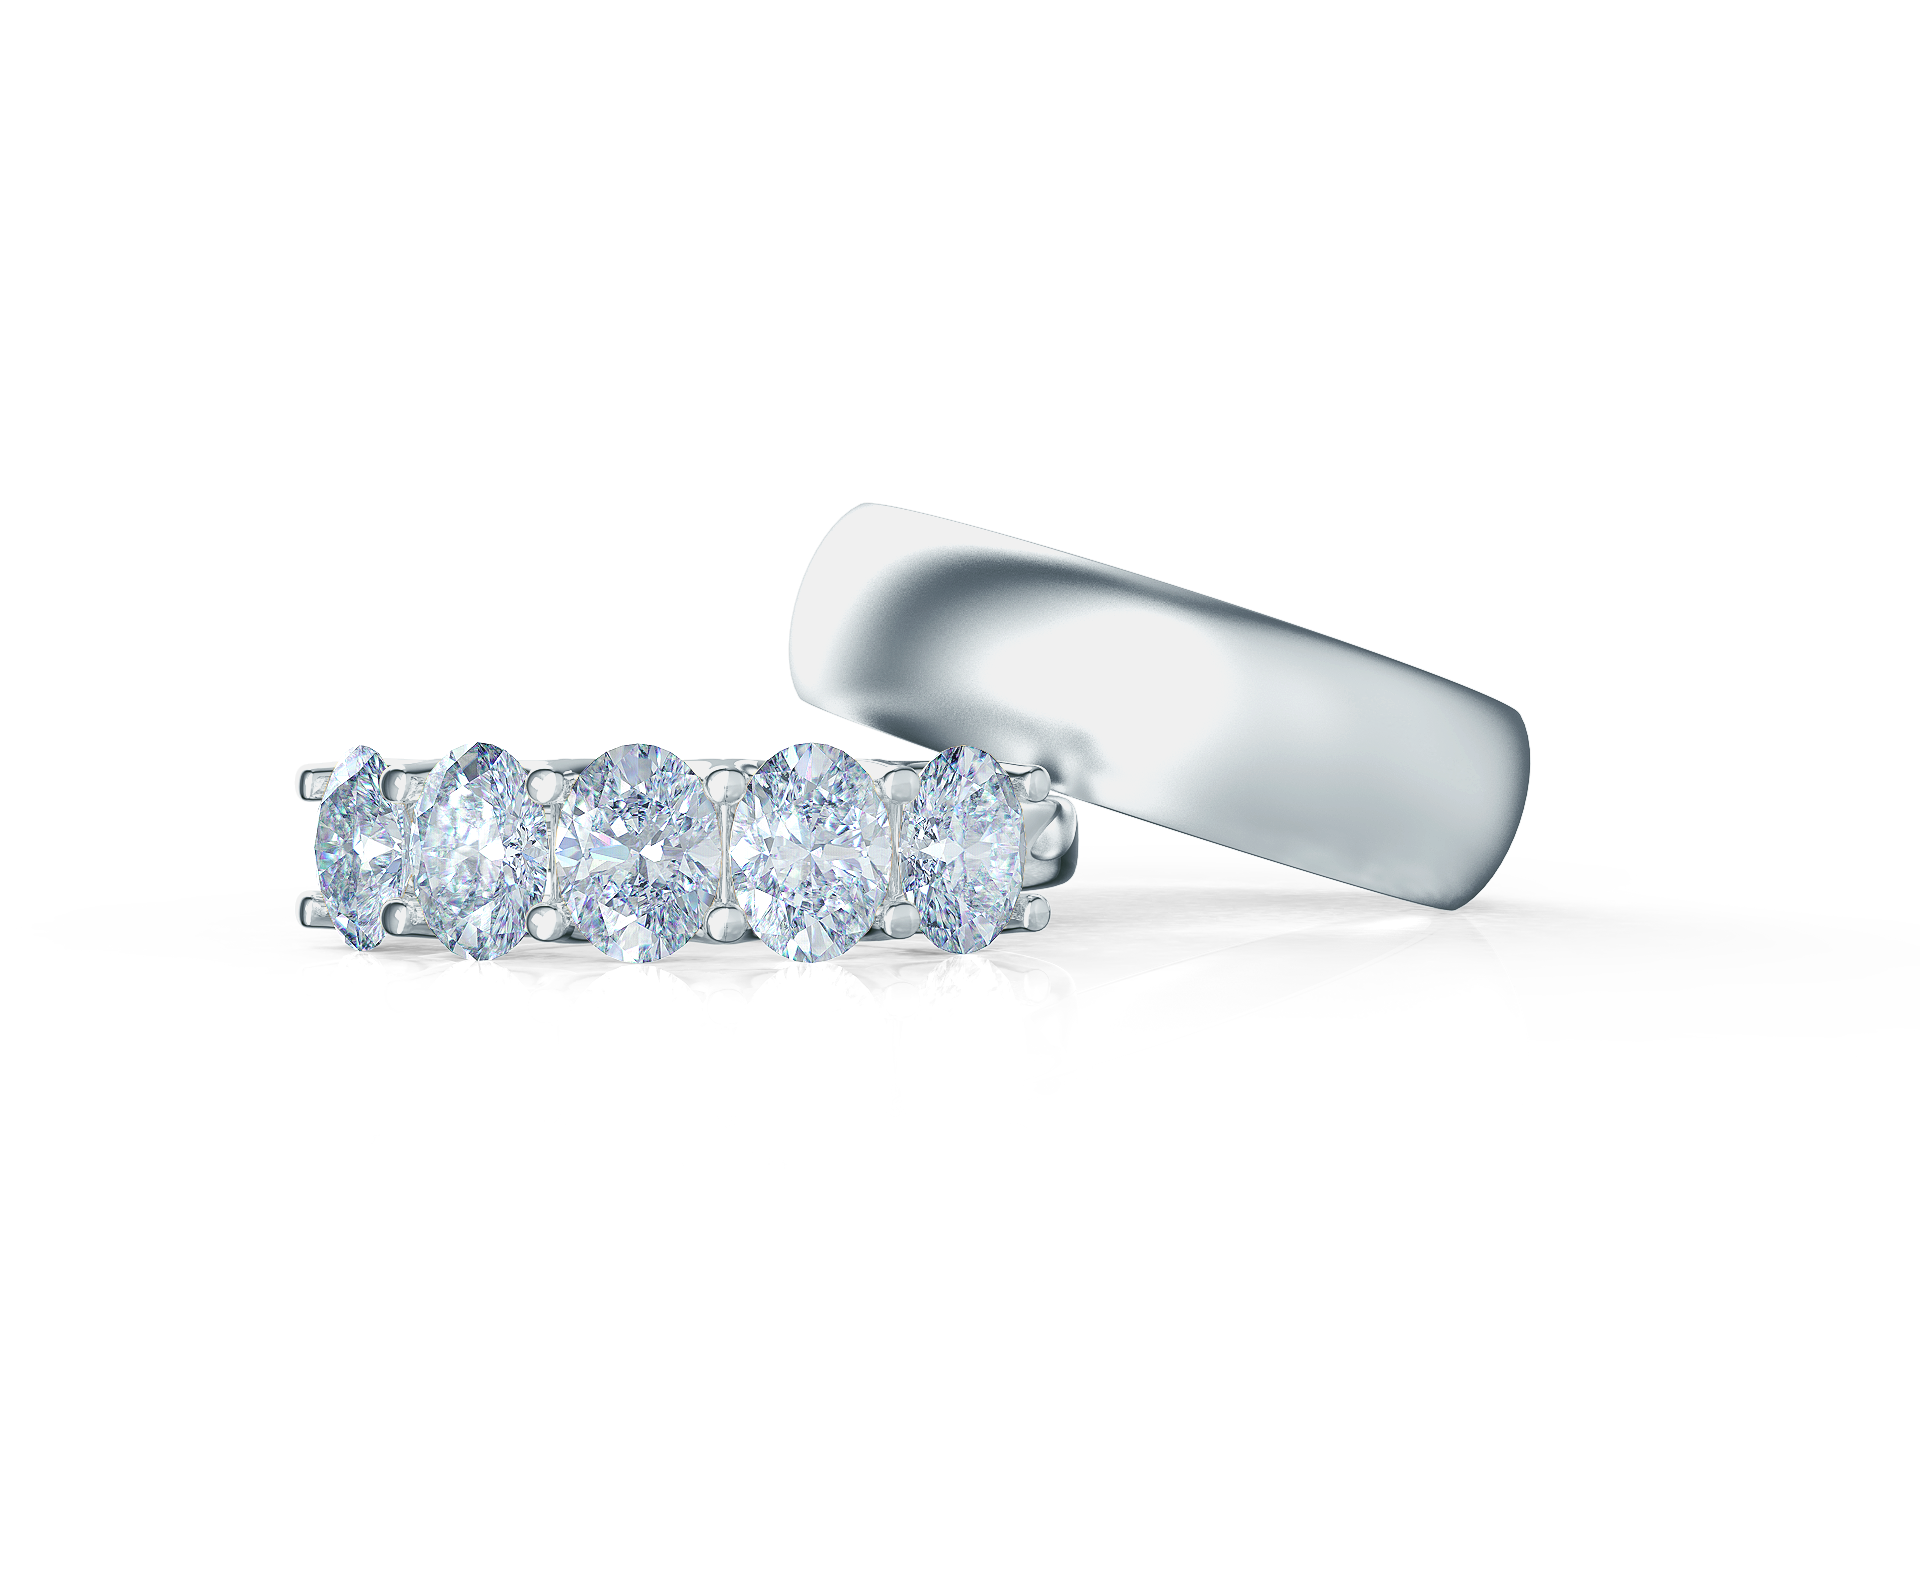 Pair your Oval Five Stone Ring with a Matte Rounded Ring    Shop Now